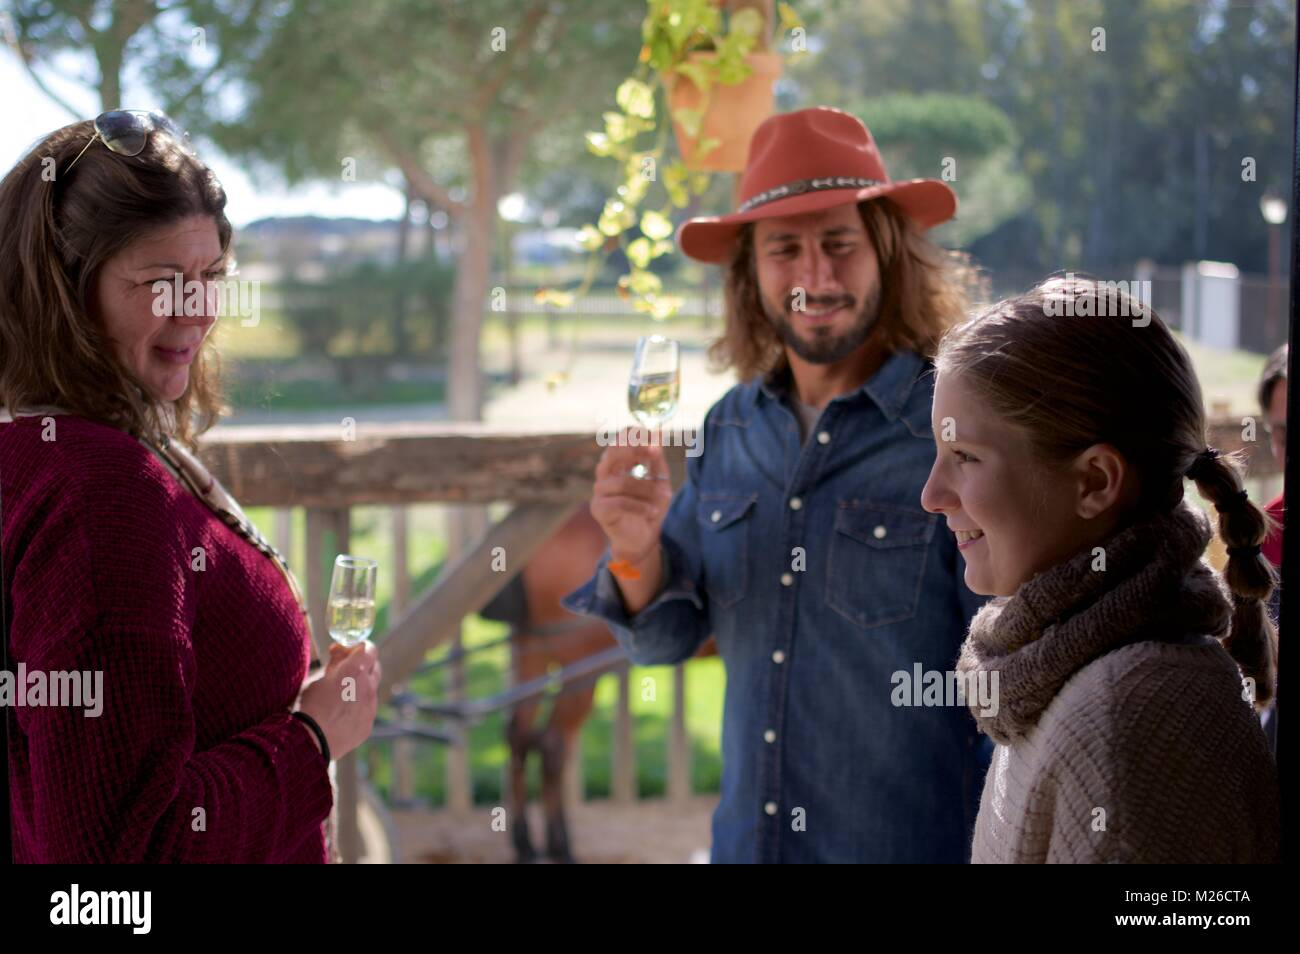 Adults drinking win in the presence of a young girl - Stock Image